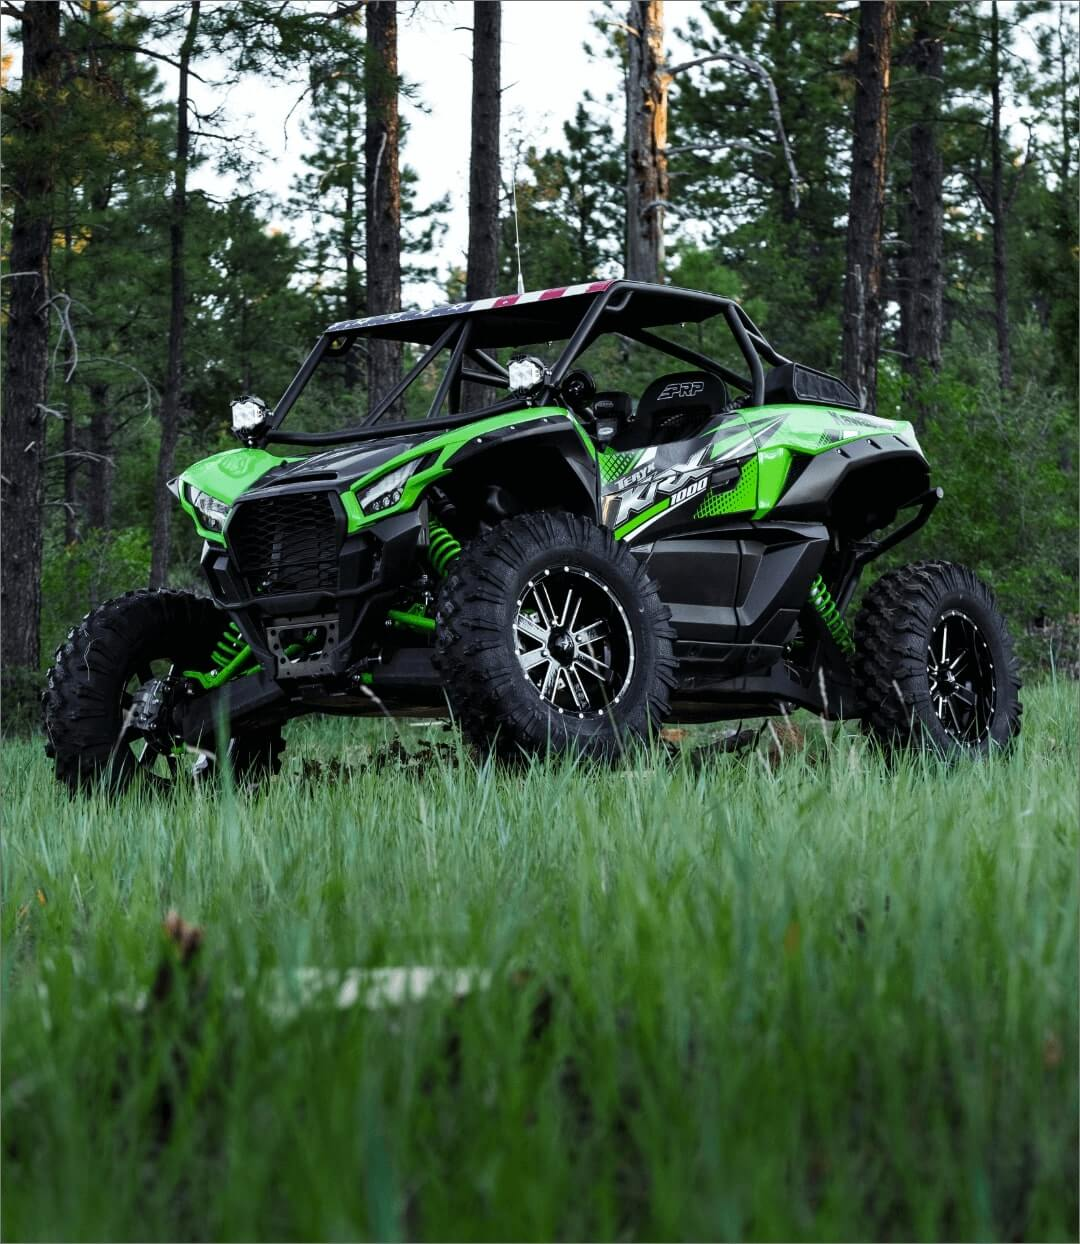 Green and Black Kawasaki Teryx KRX 1000 parked in the woods